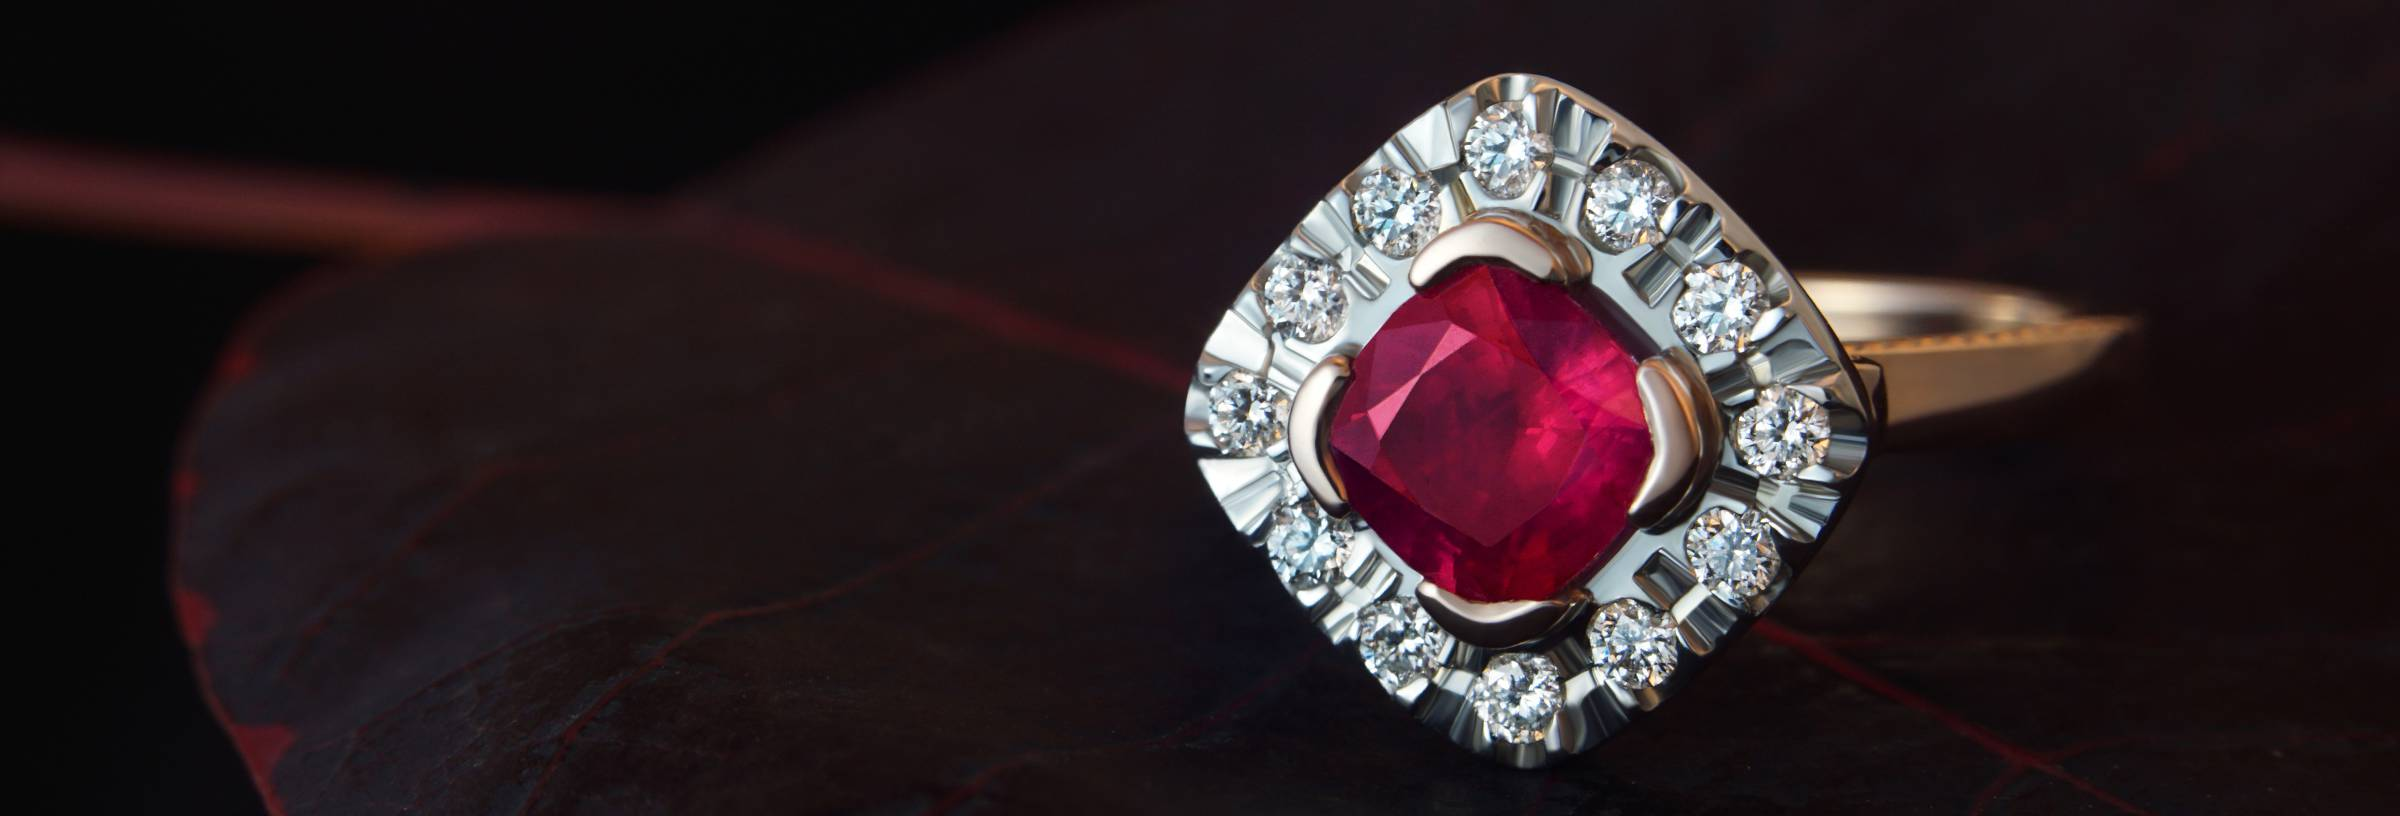 Ruby Engagement Rings Information